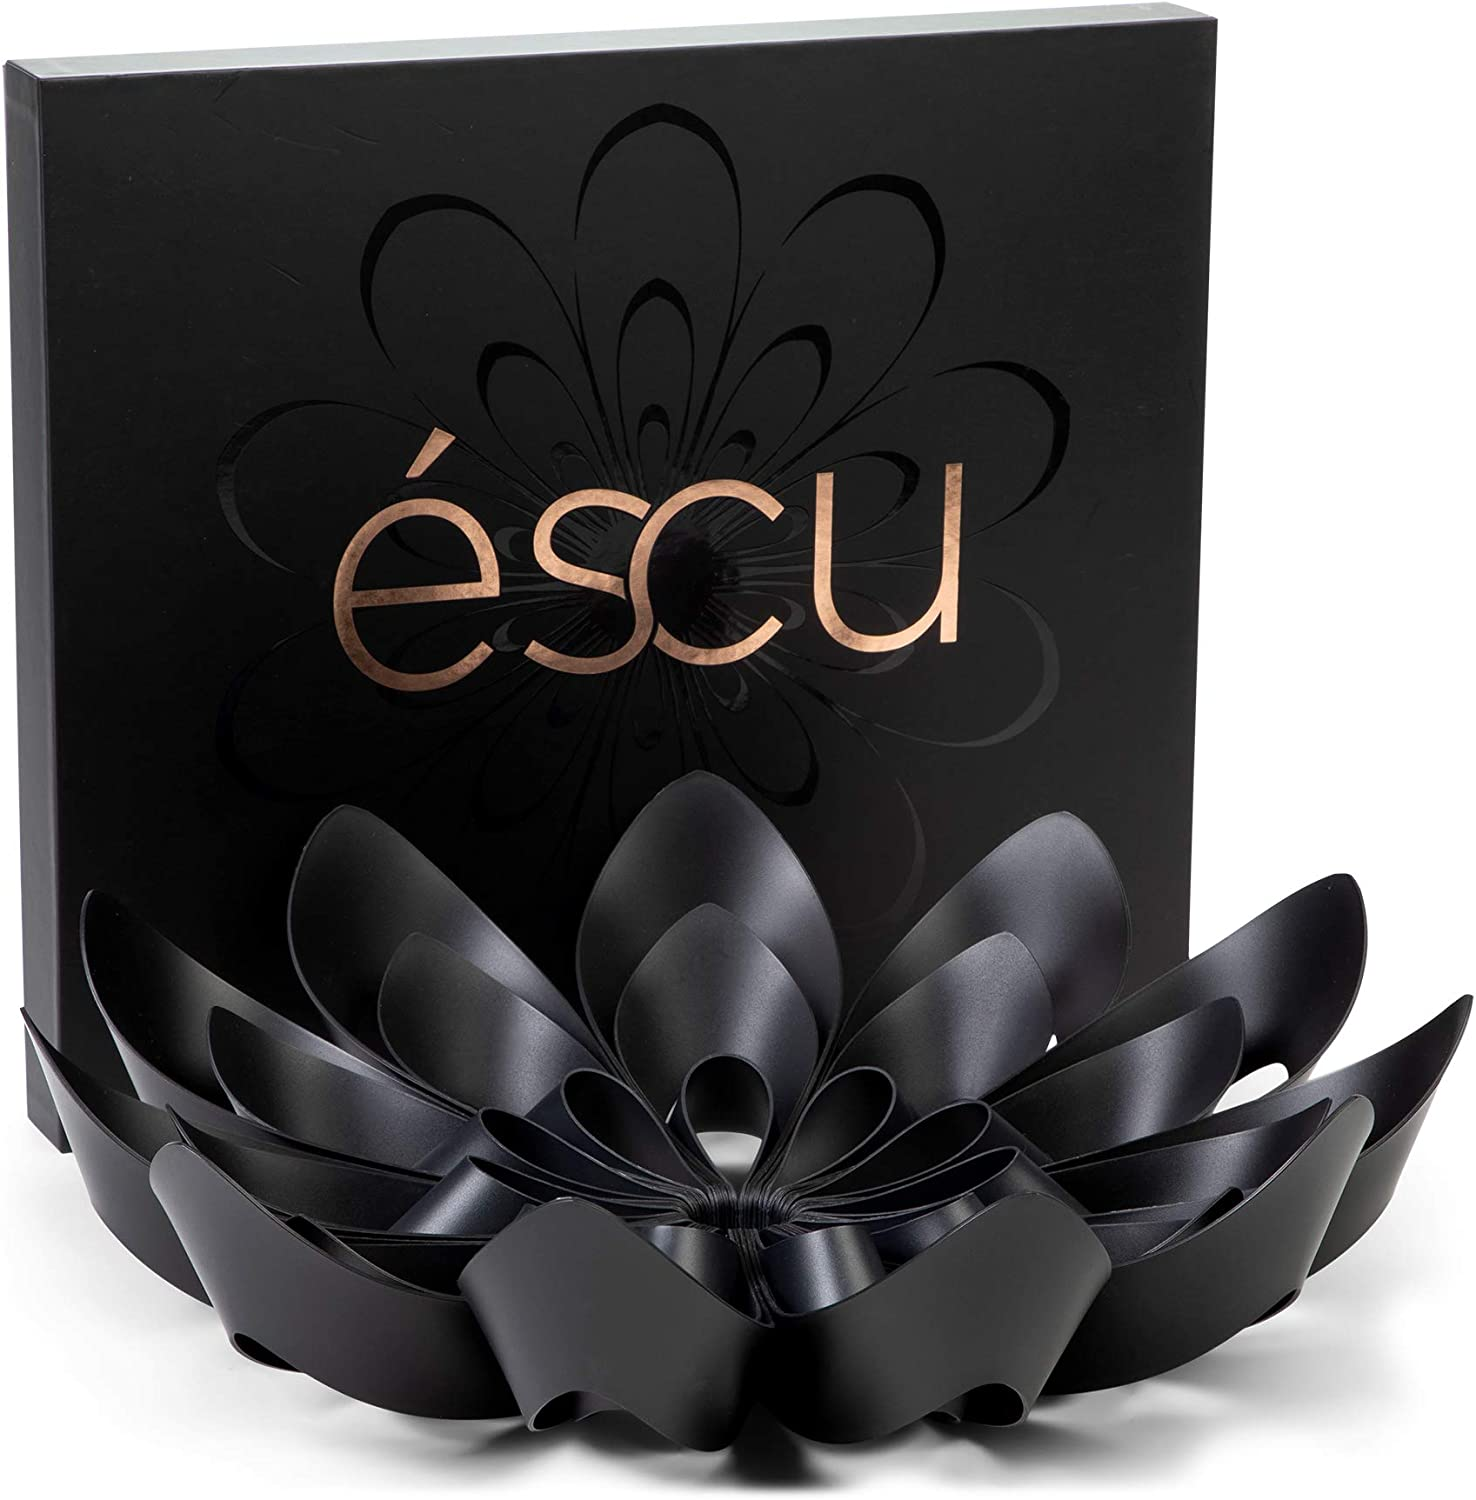 "éscu Modern Fruit Bowl for Kitchen Table and Countertop Decor - Black, 15"" Diameter - Large Decorative Snack Bowls 71iIbi2VIoL"